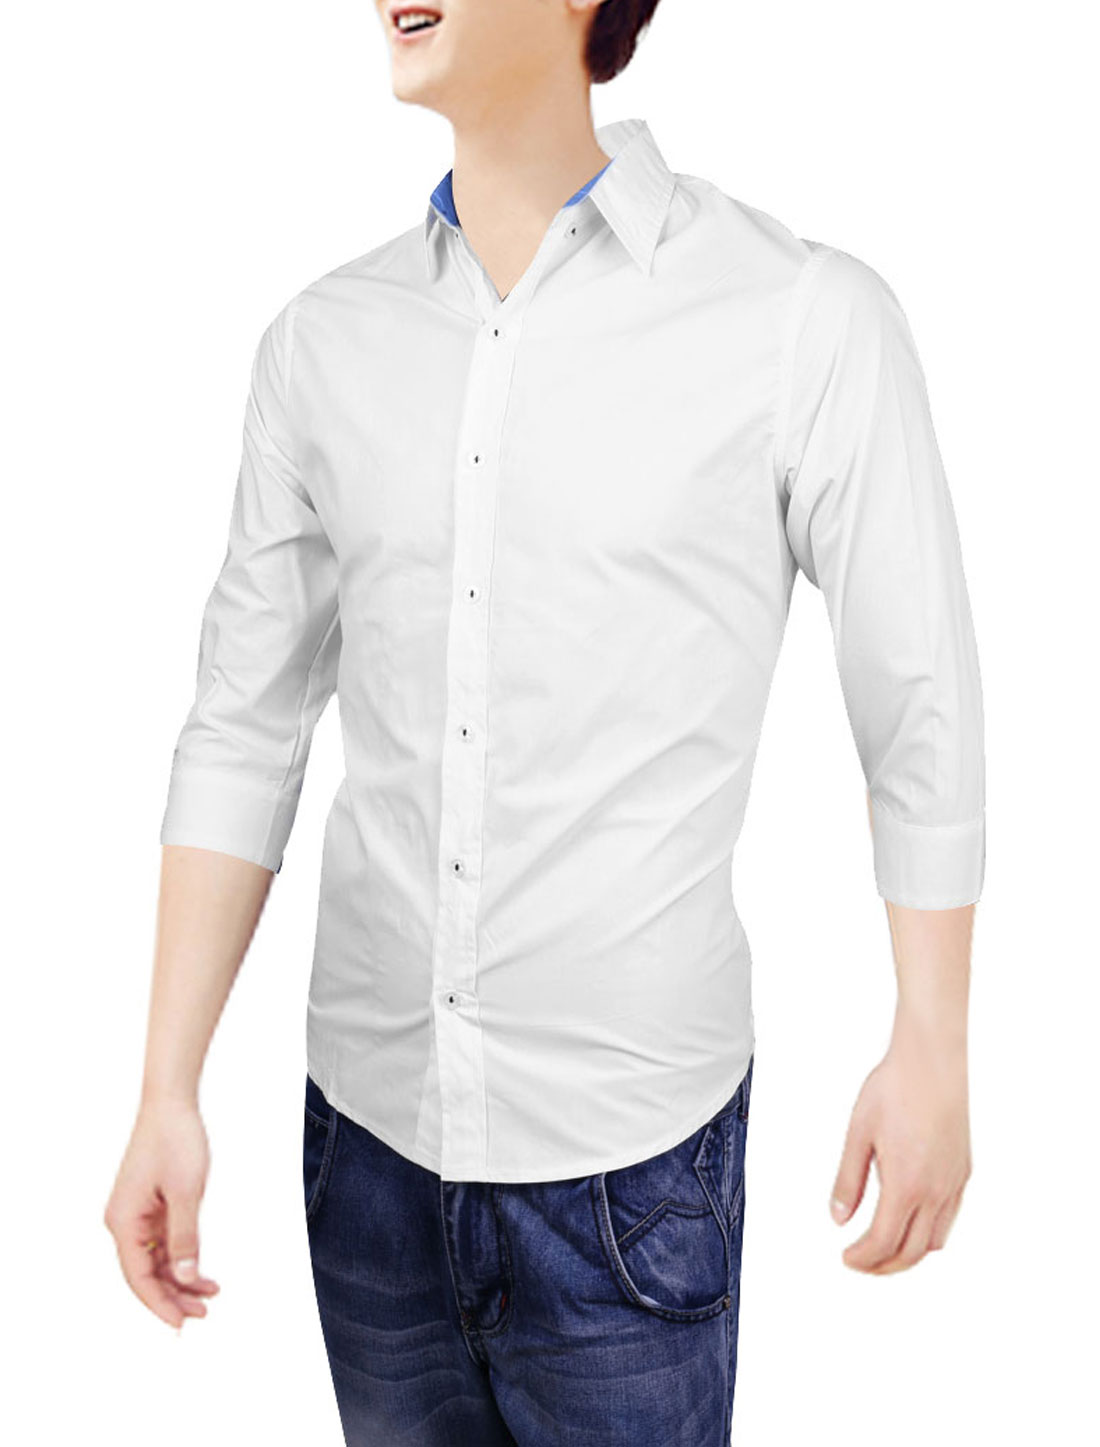 Man Korea Fashion 3/4 Sleeve Design Button Down White Casual Shirt S